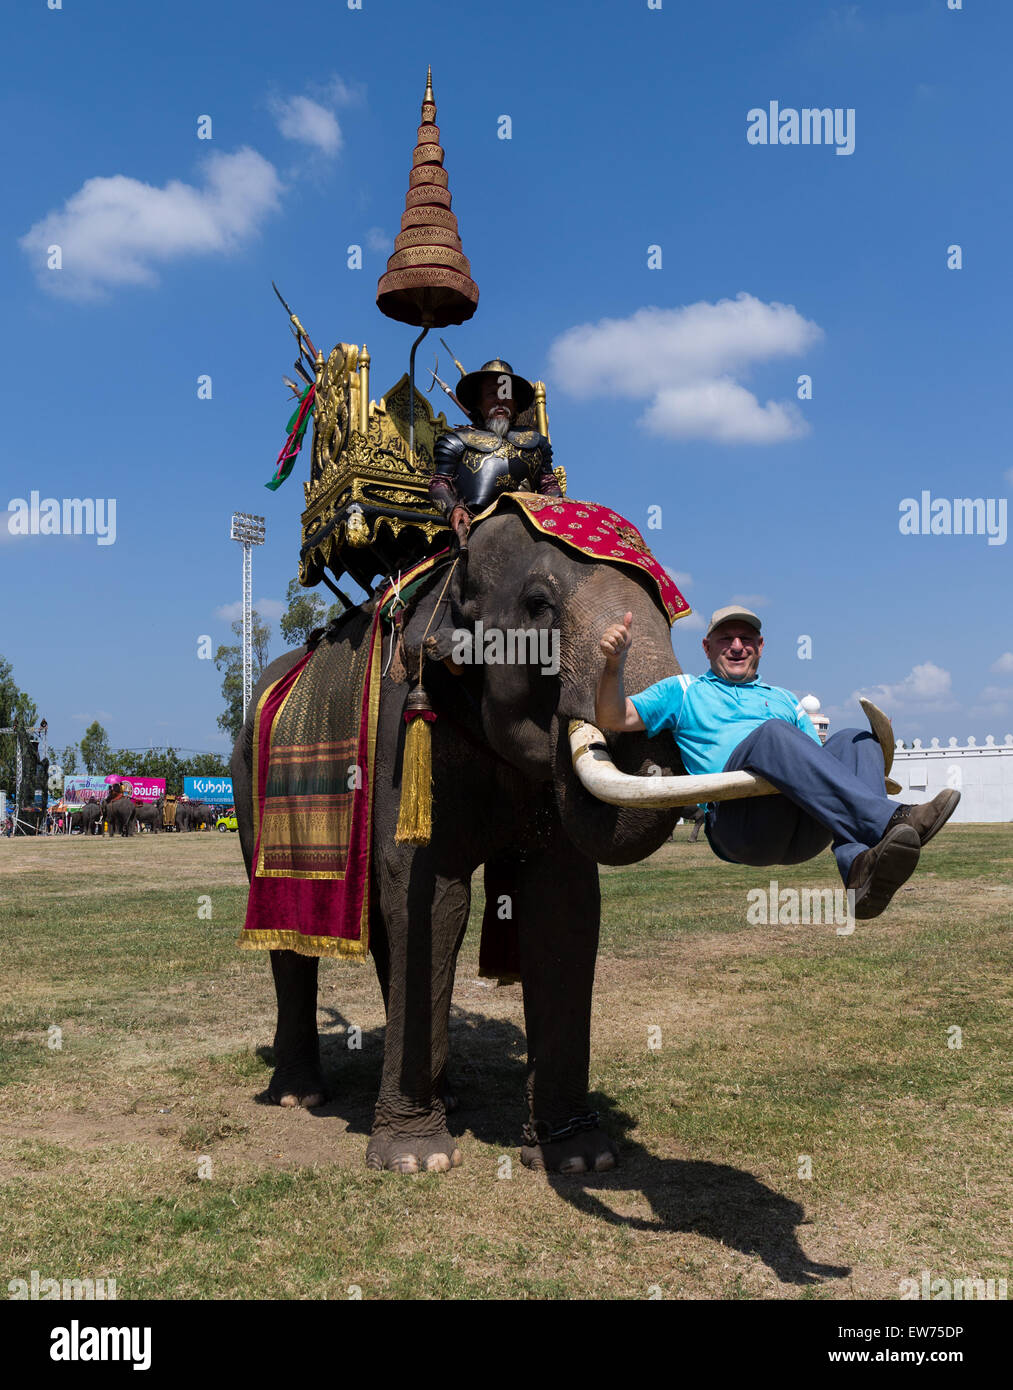 War elephant carrying a tourist on the tusks, Elephant Festival, Elephant Round Up, Surin, Surin Province, Isan, - Stock Image